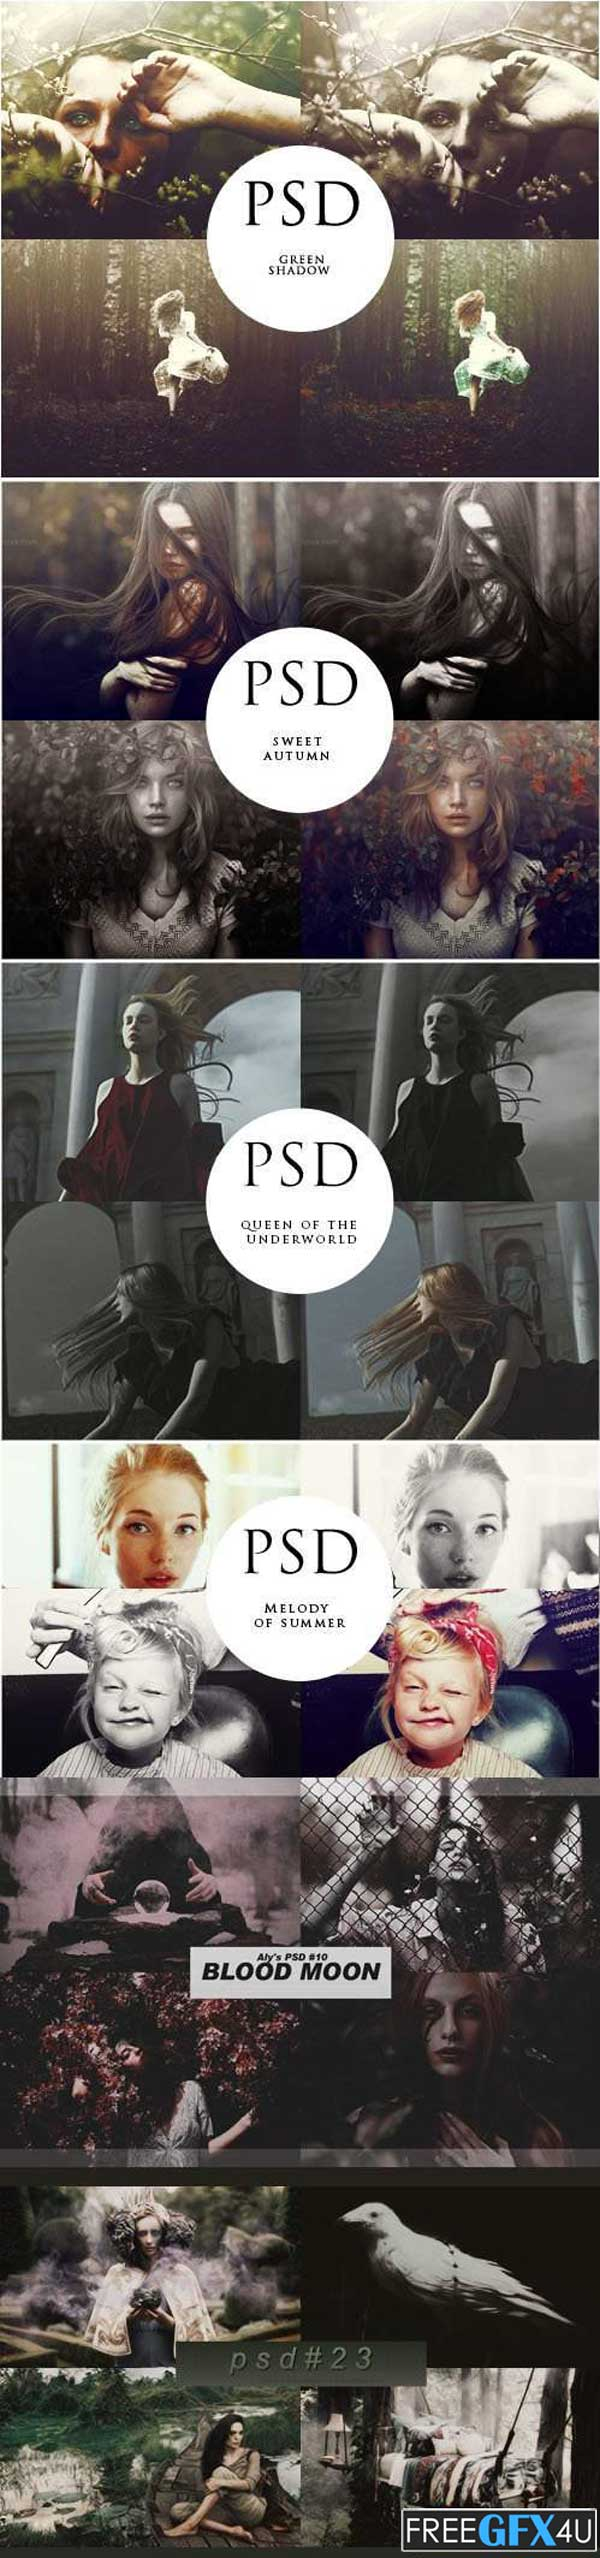 Coloring Effects - PSD Templates